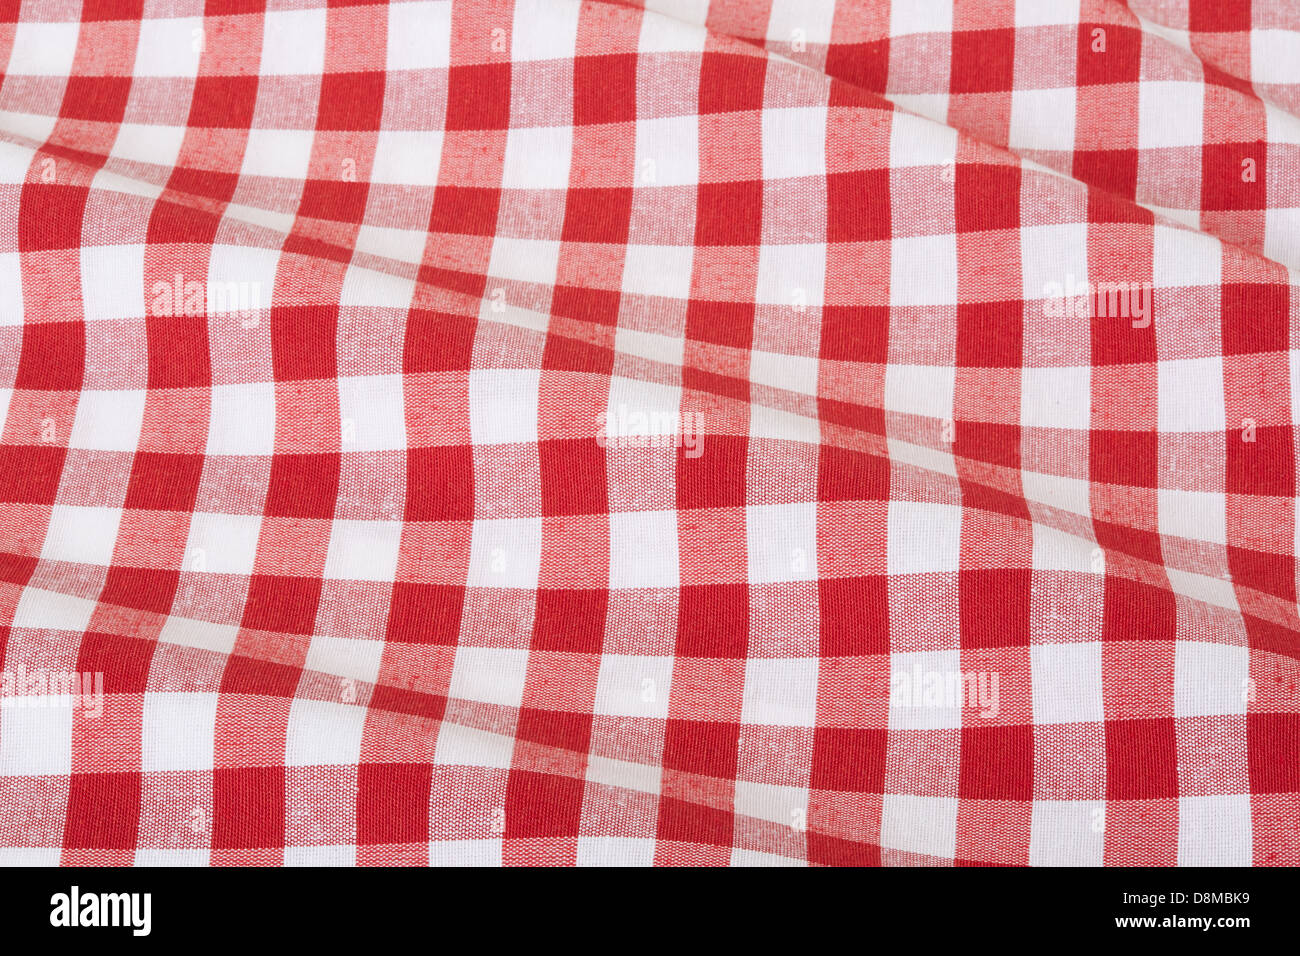 Exceptional Red And White Wavy Gingham Tablecloth Texture Background